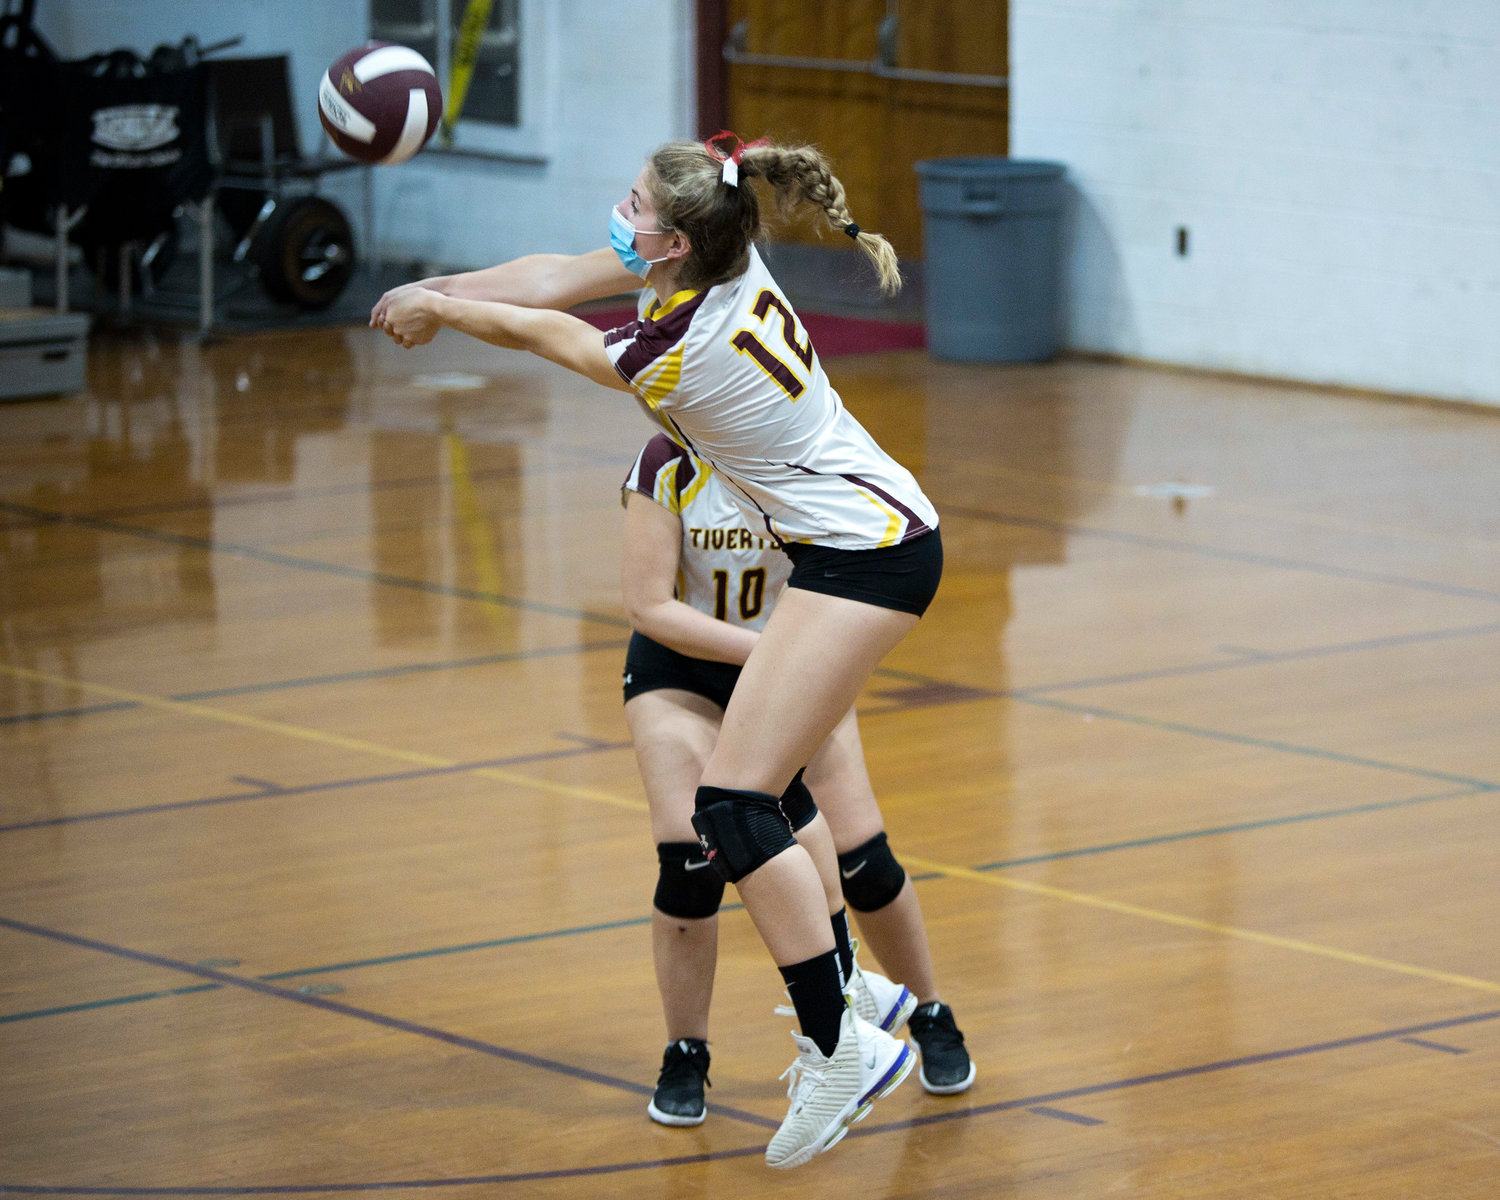 Molly Richardson sends the ball back over the net during Friday night's game against Times Two Academy.